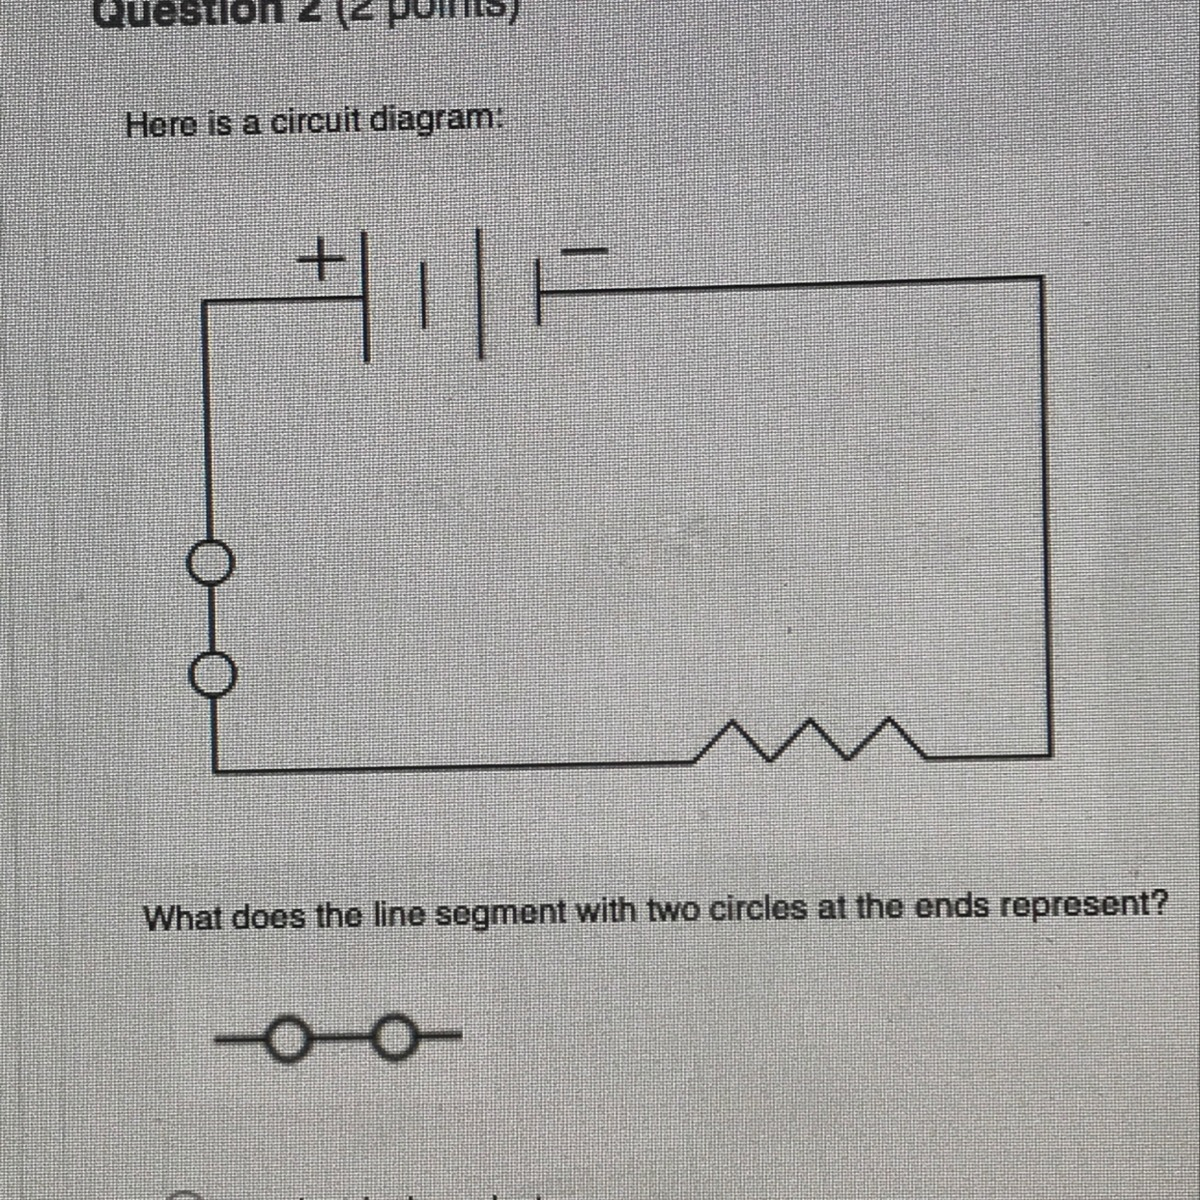 here is a circuit diagram  what does the line segment with two circles at the ends represent